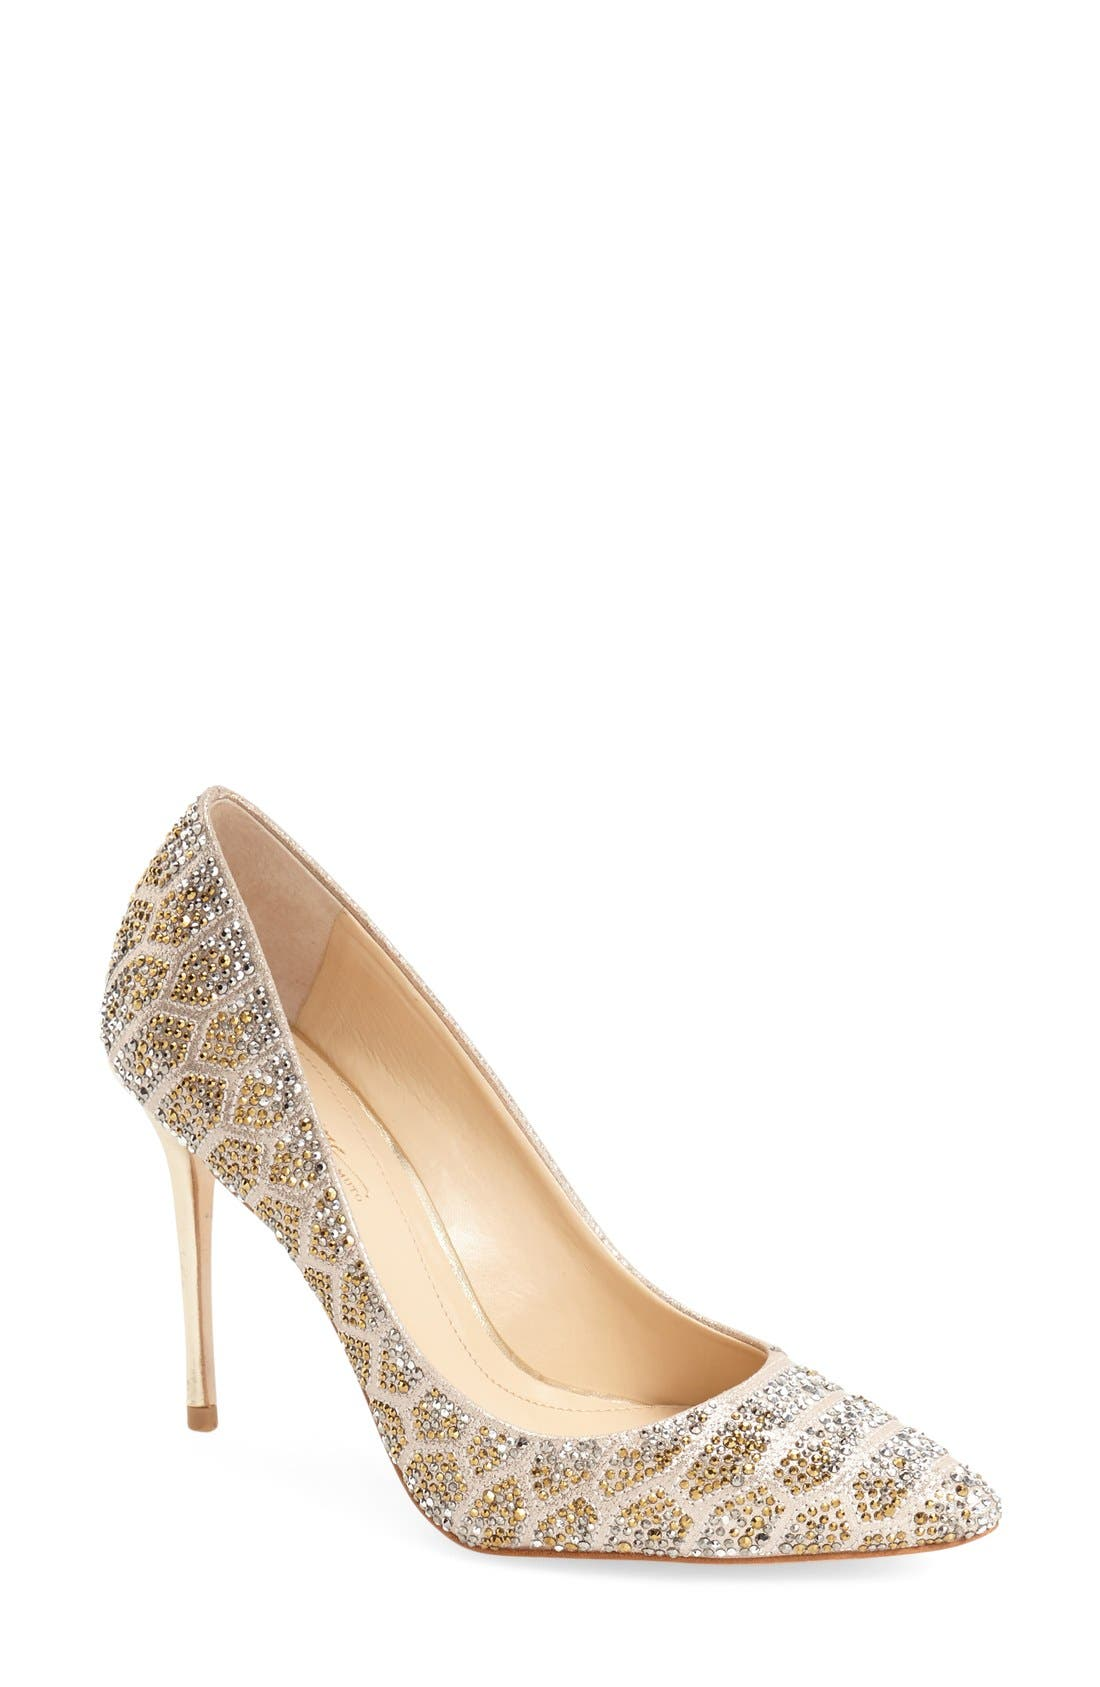 Imagine Vince Camuto 'Olivier' Pointy Toe Pump,                         Main,                         color, Soft Gold